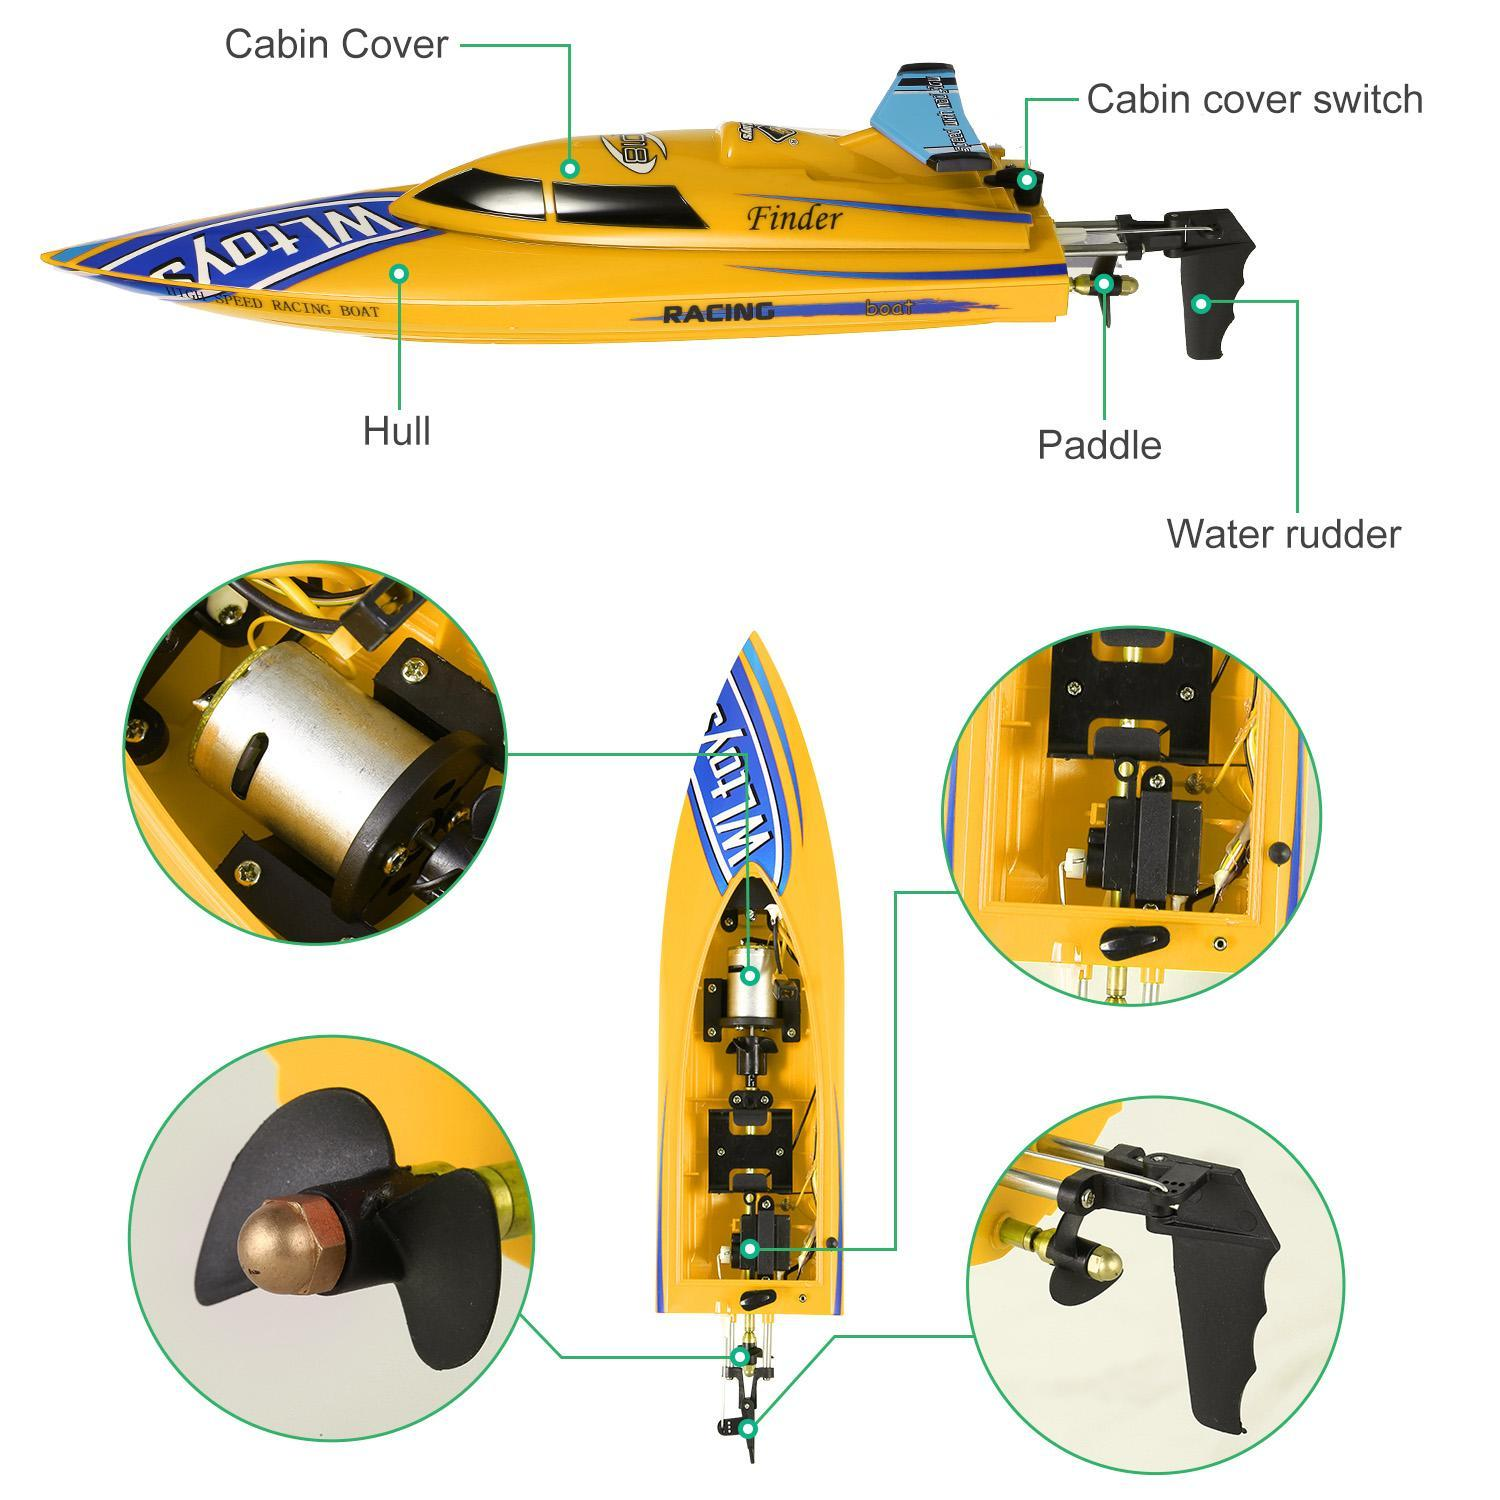 Waterproof Electric RC Racing Boat 2.4G Remote Controlled High Speed Watercraft for Pools Lakes by